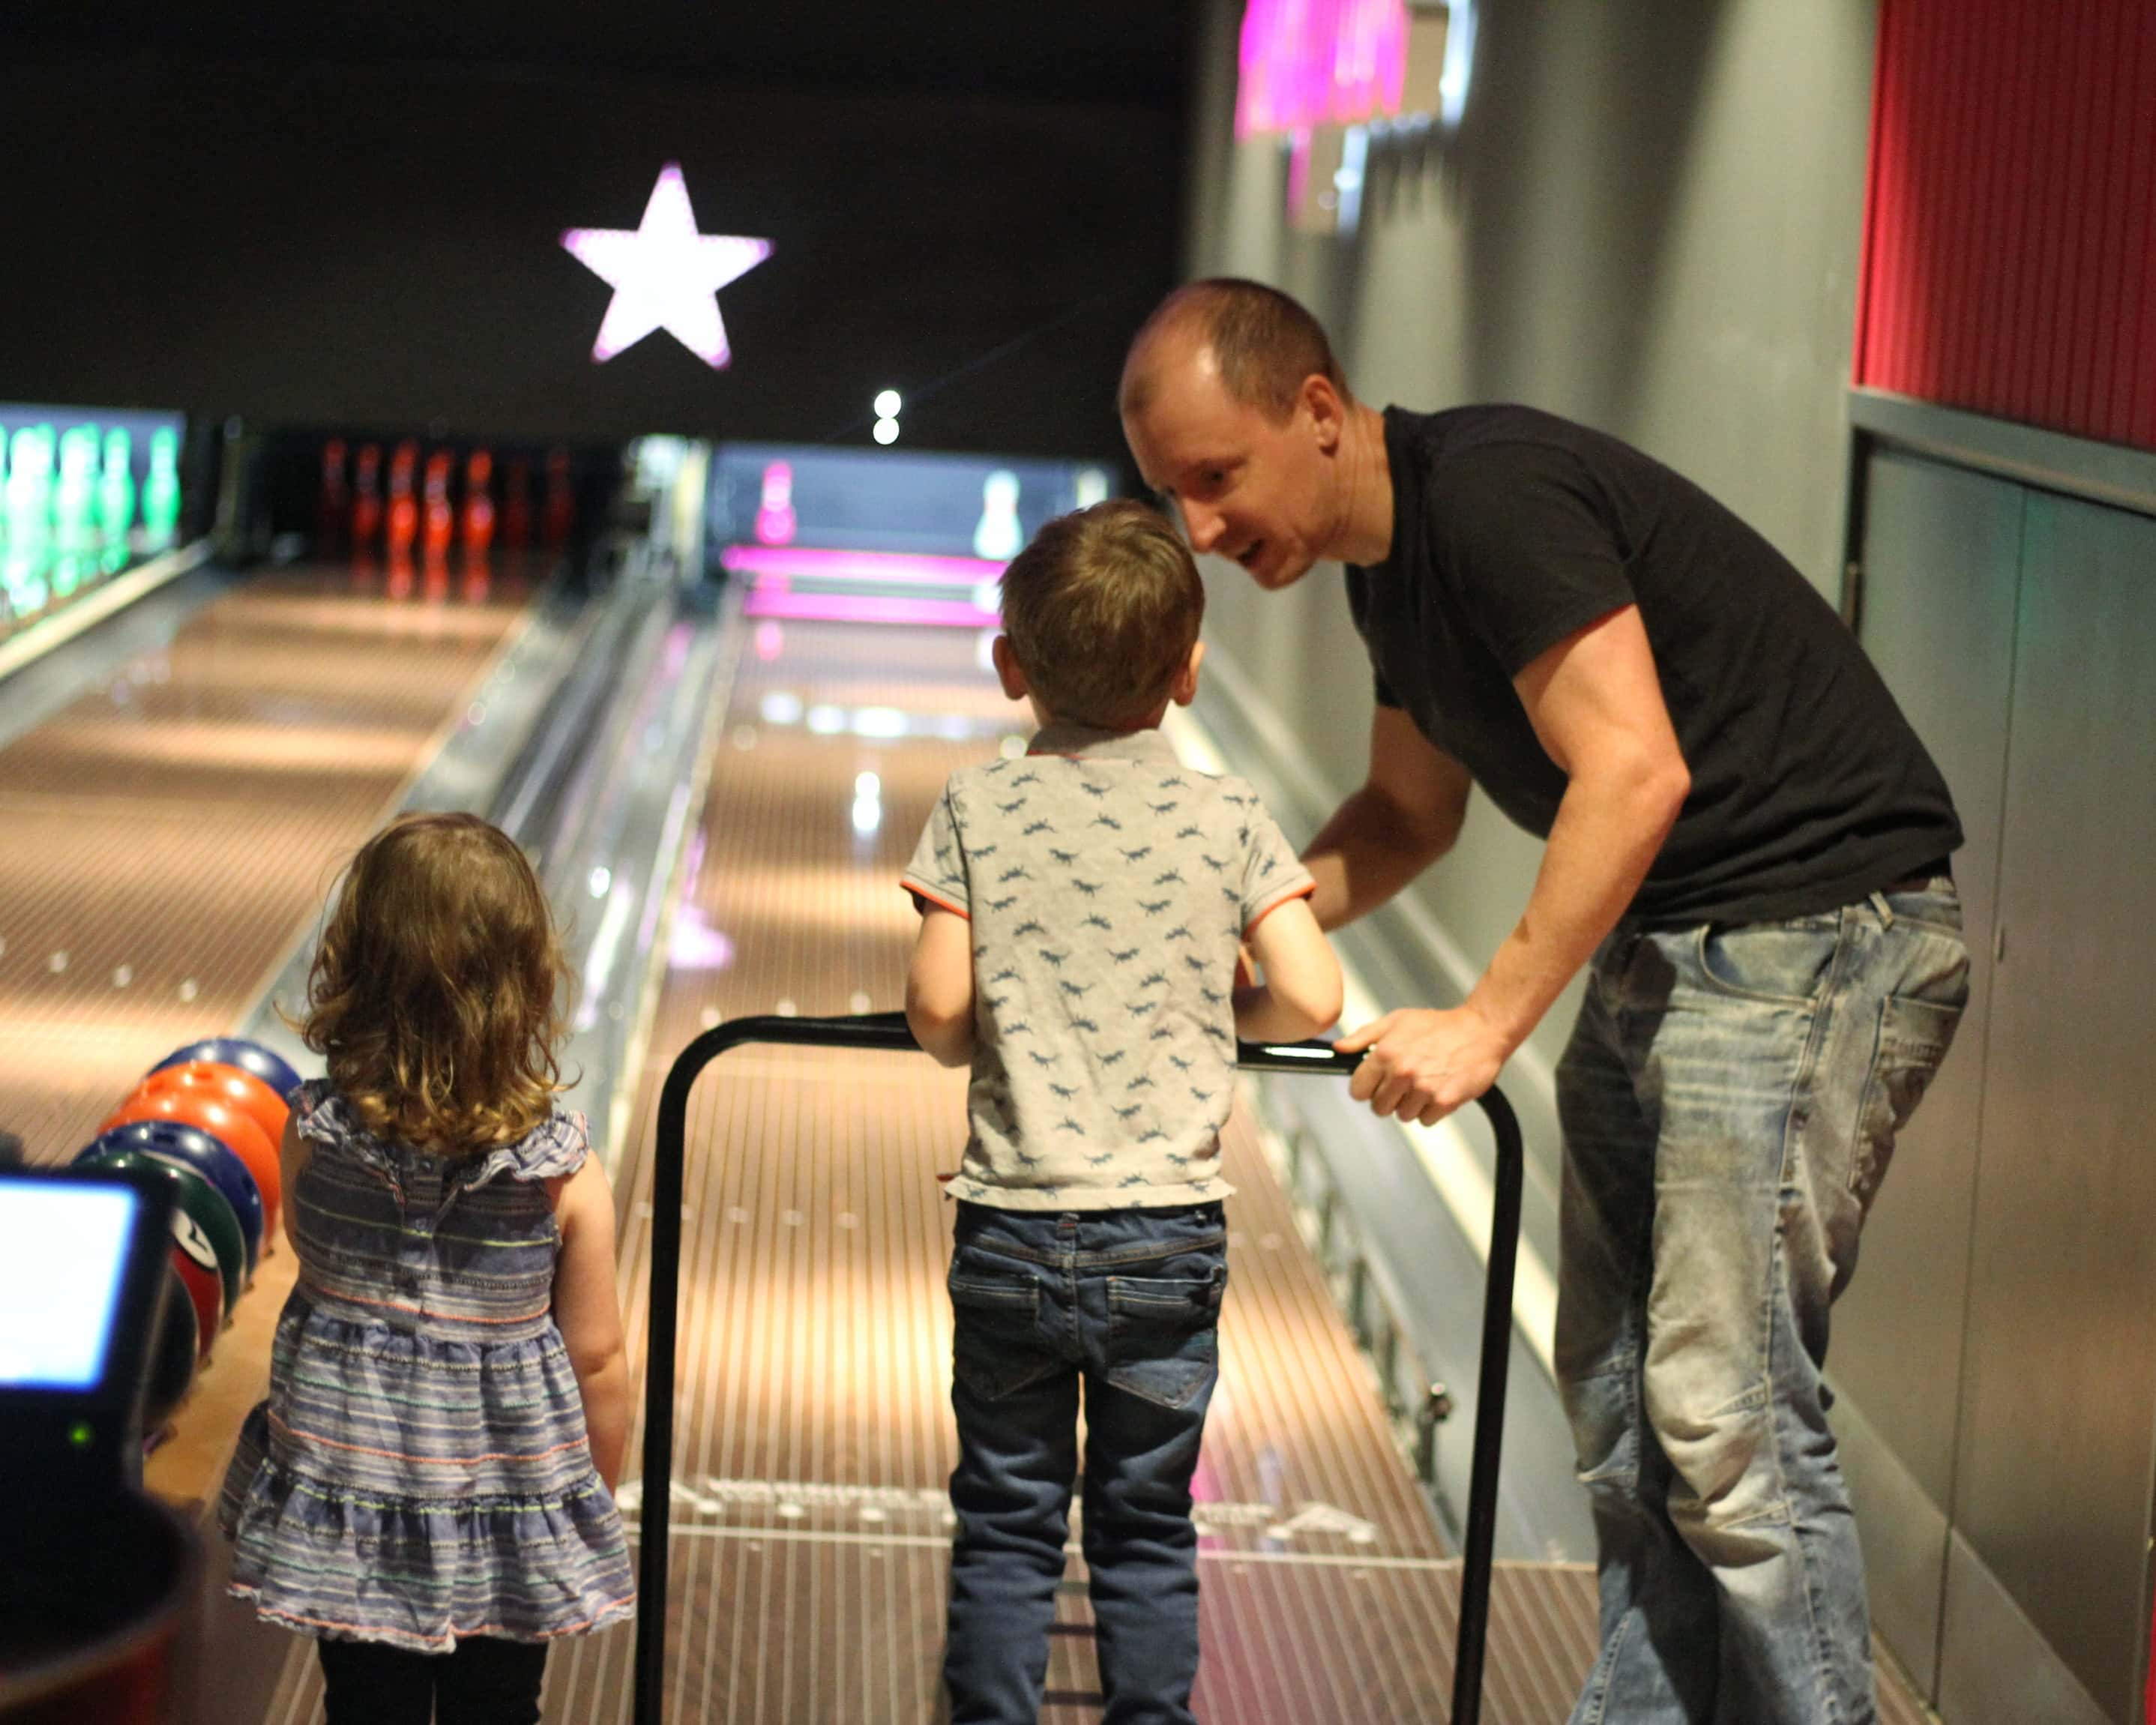 Biggest, Littlest and Daddy bowling at Hollywood Bowl